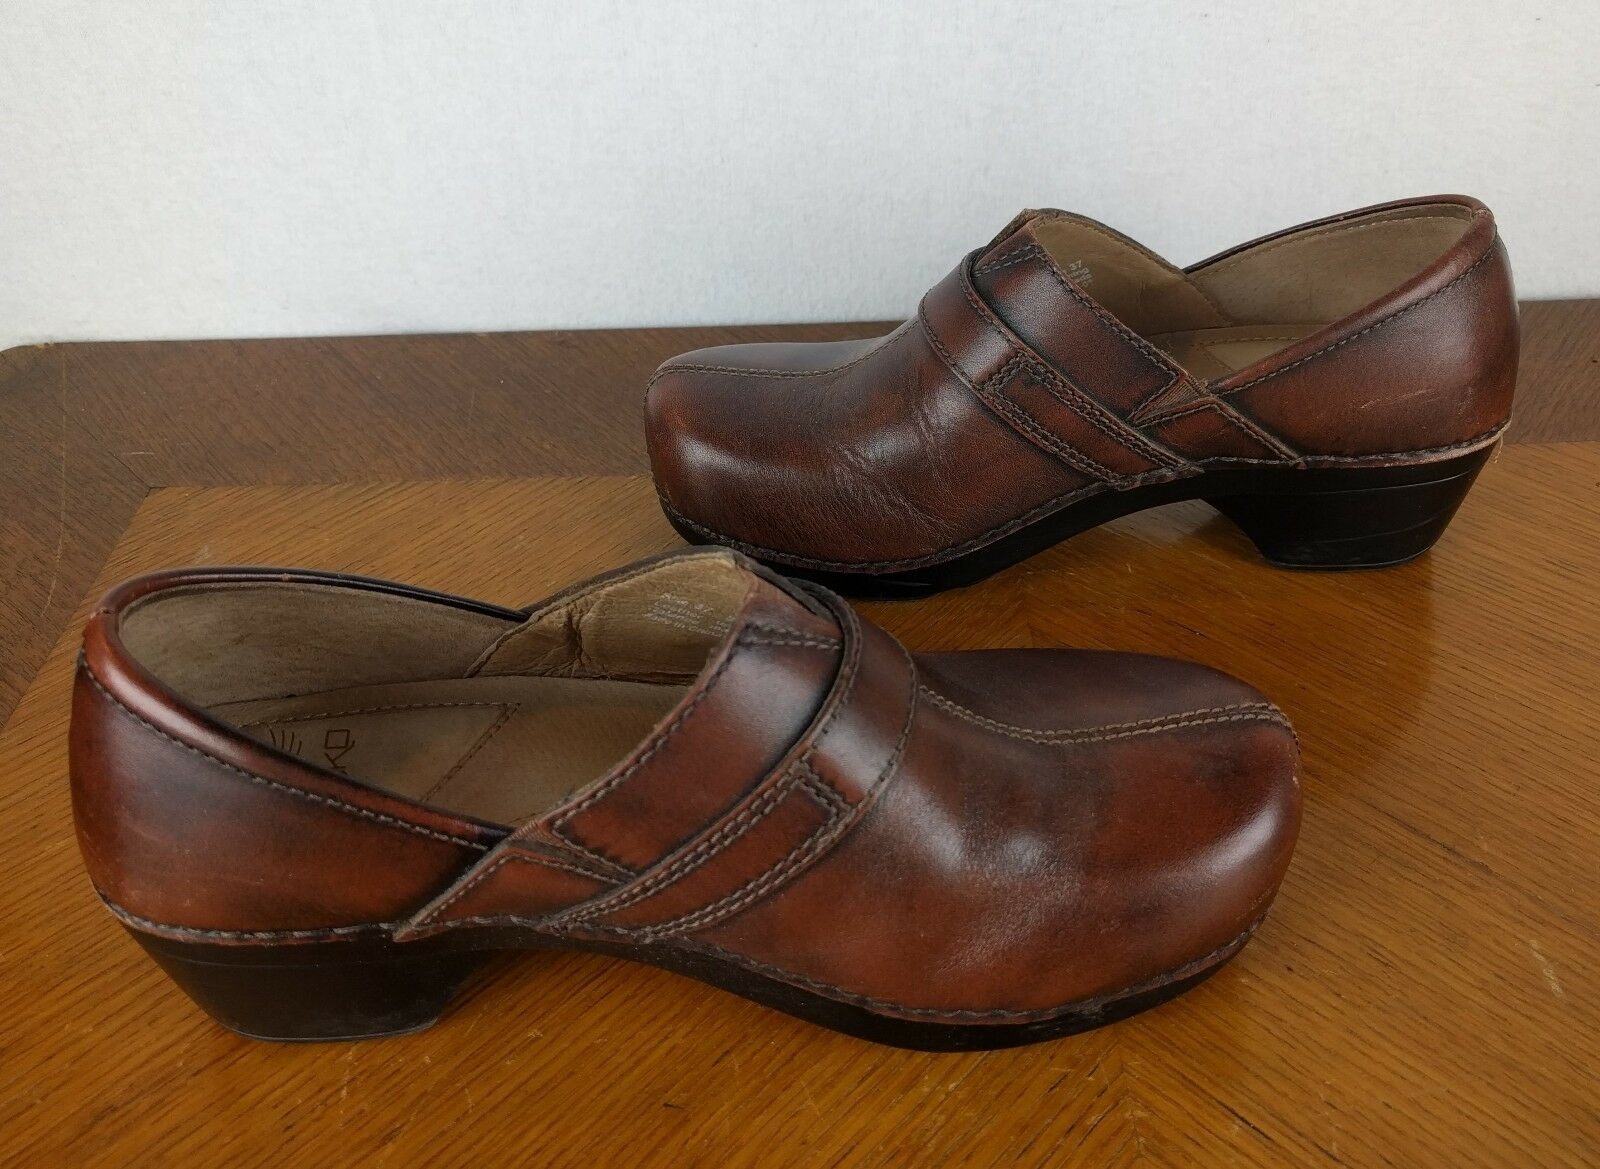 Dansko Brown Brown Brown Slip On Clogs shoes Womens Sz 37 Mid Calf Boots Work Nurse Solstice 8c1558